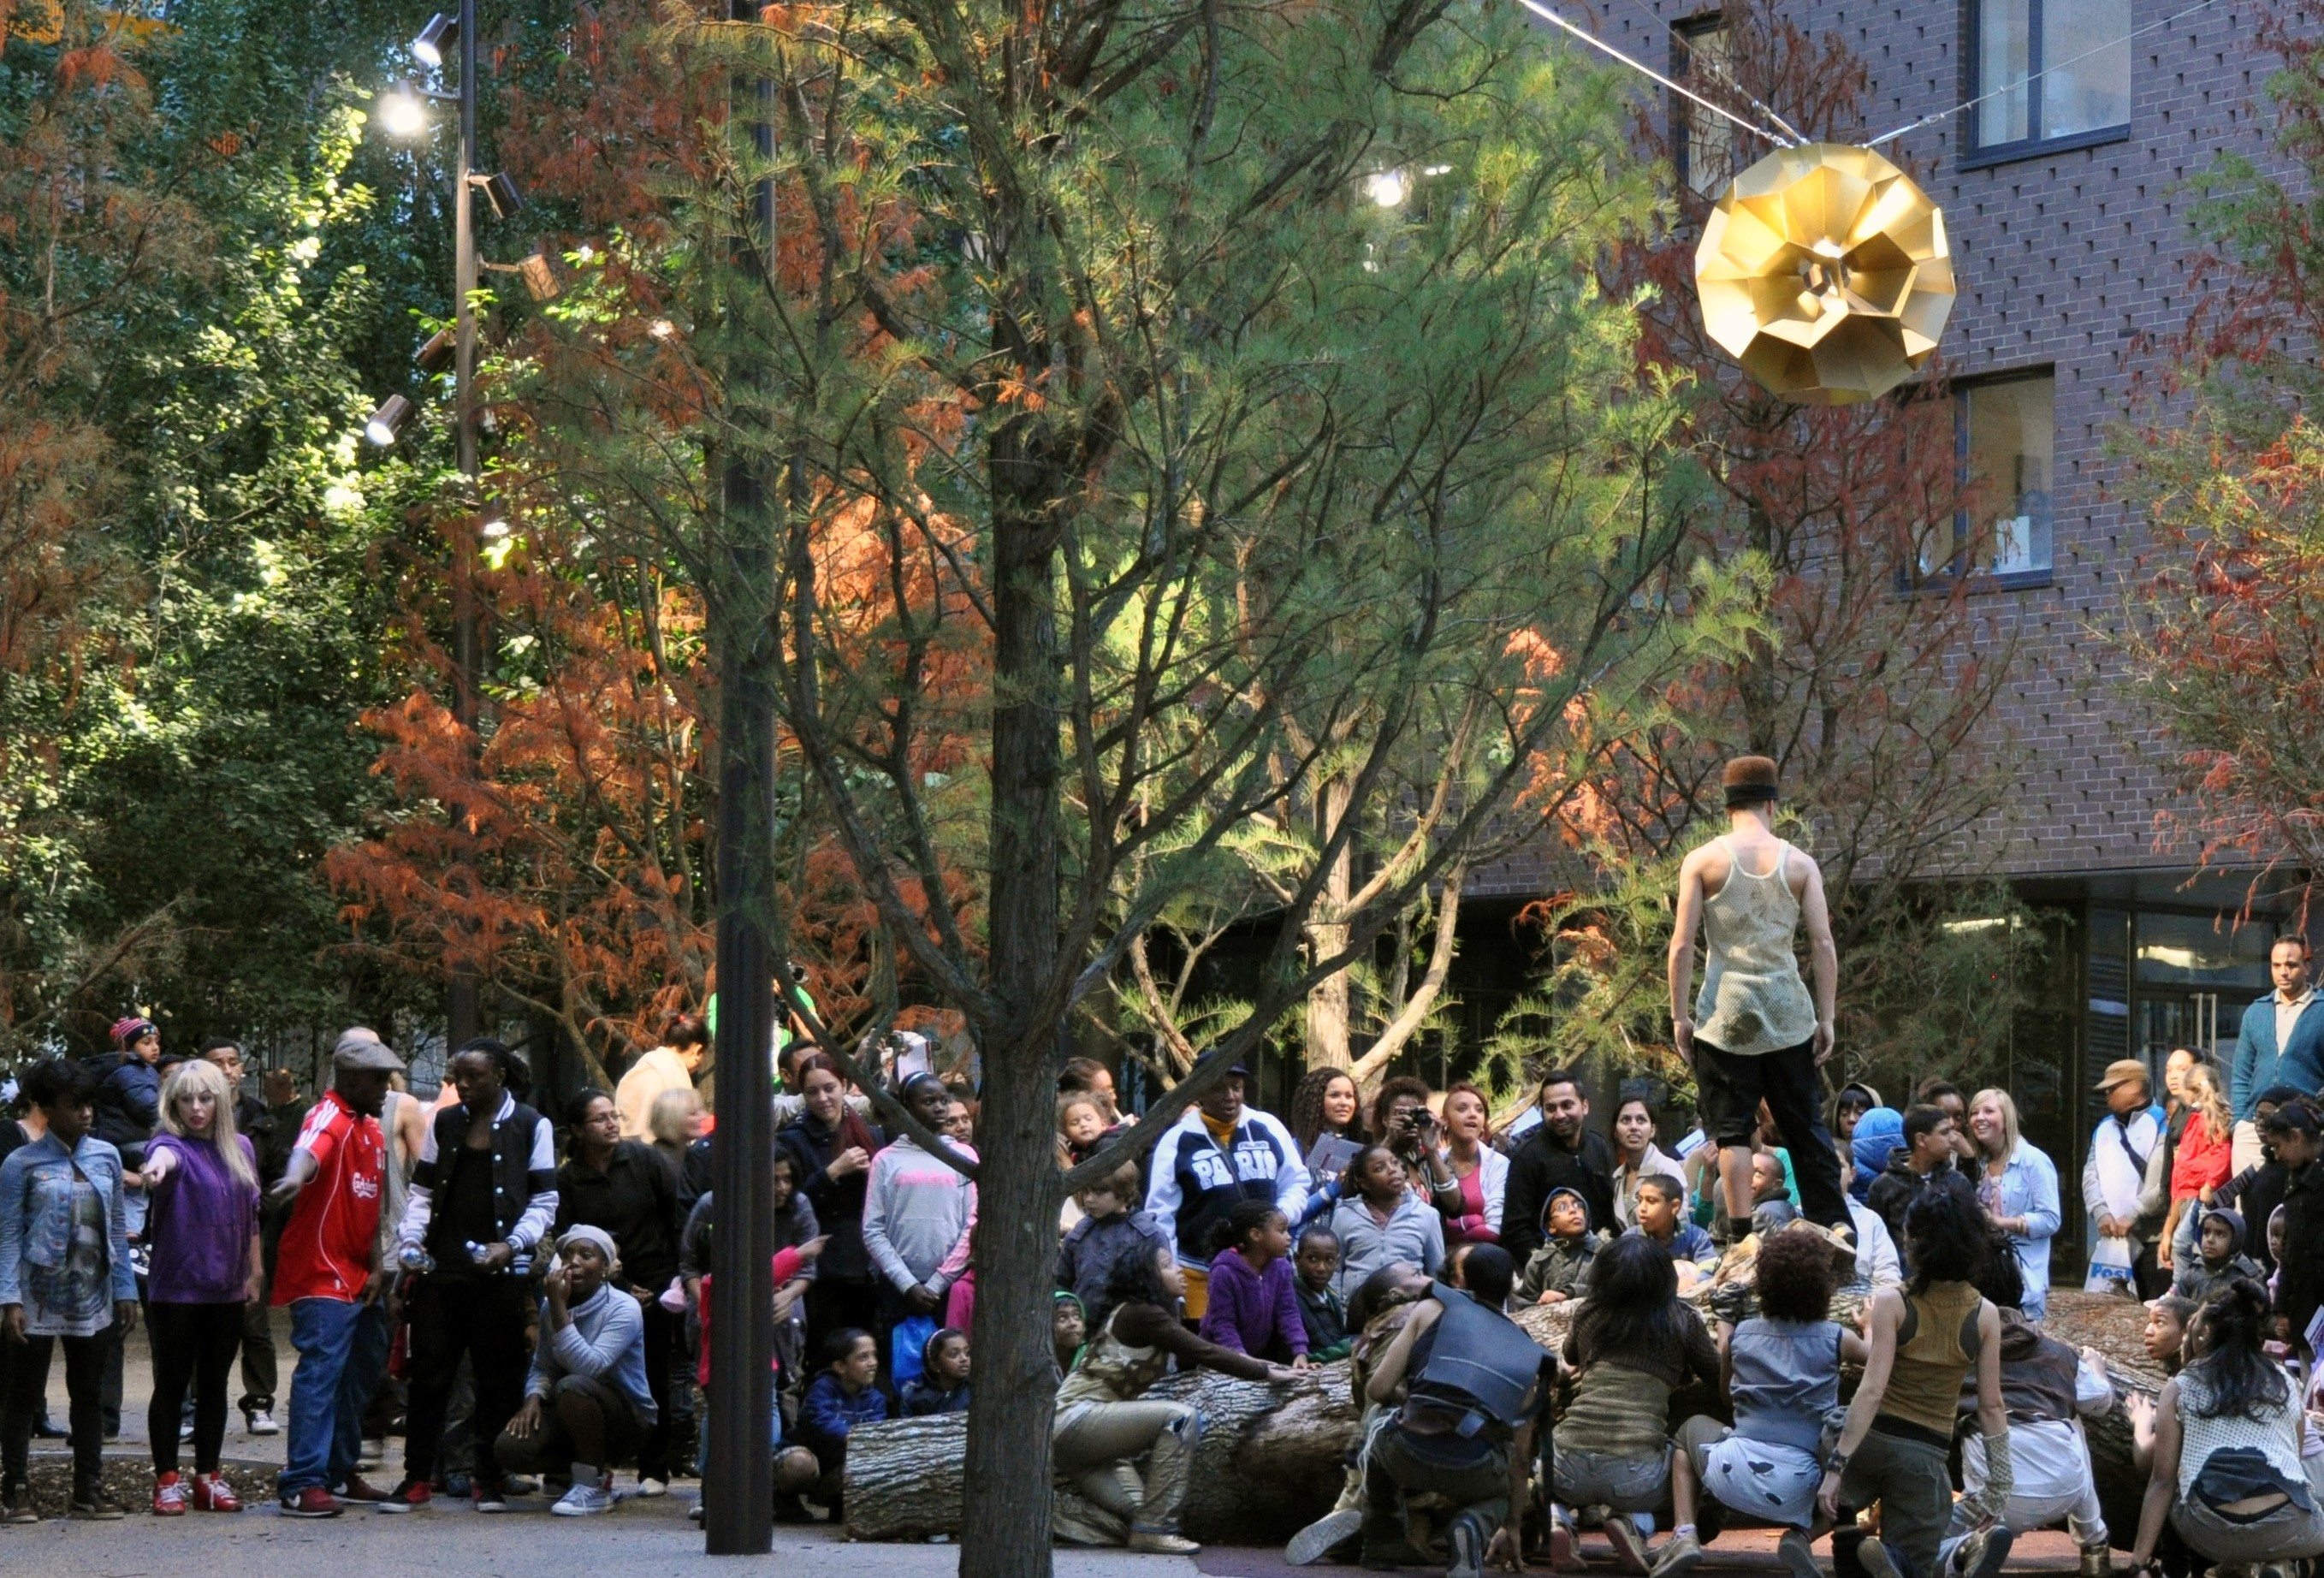 A group of artists performing in a public open space surrounded by buildings. A large crowd is watching the performance.